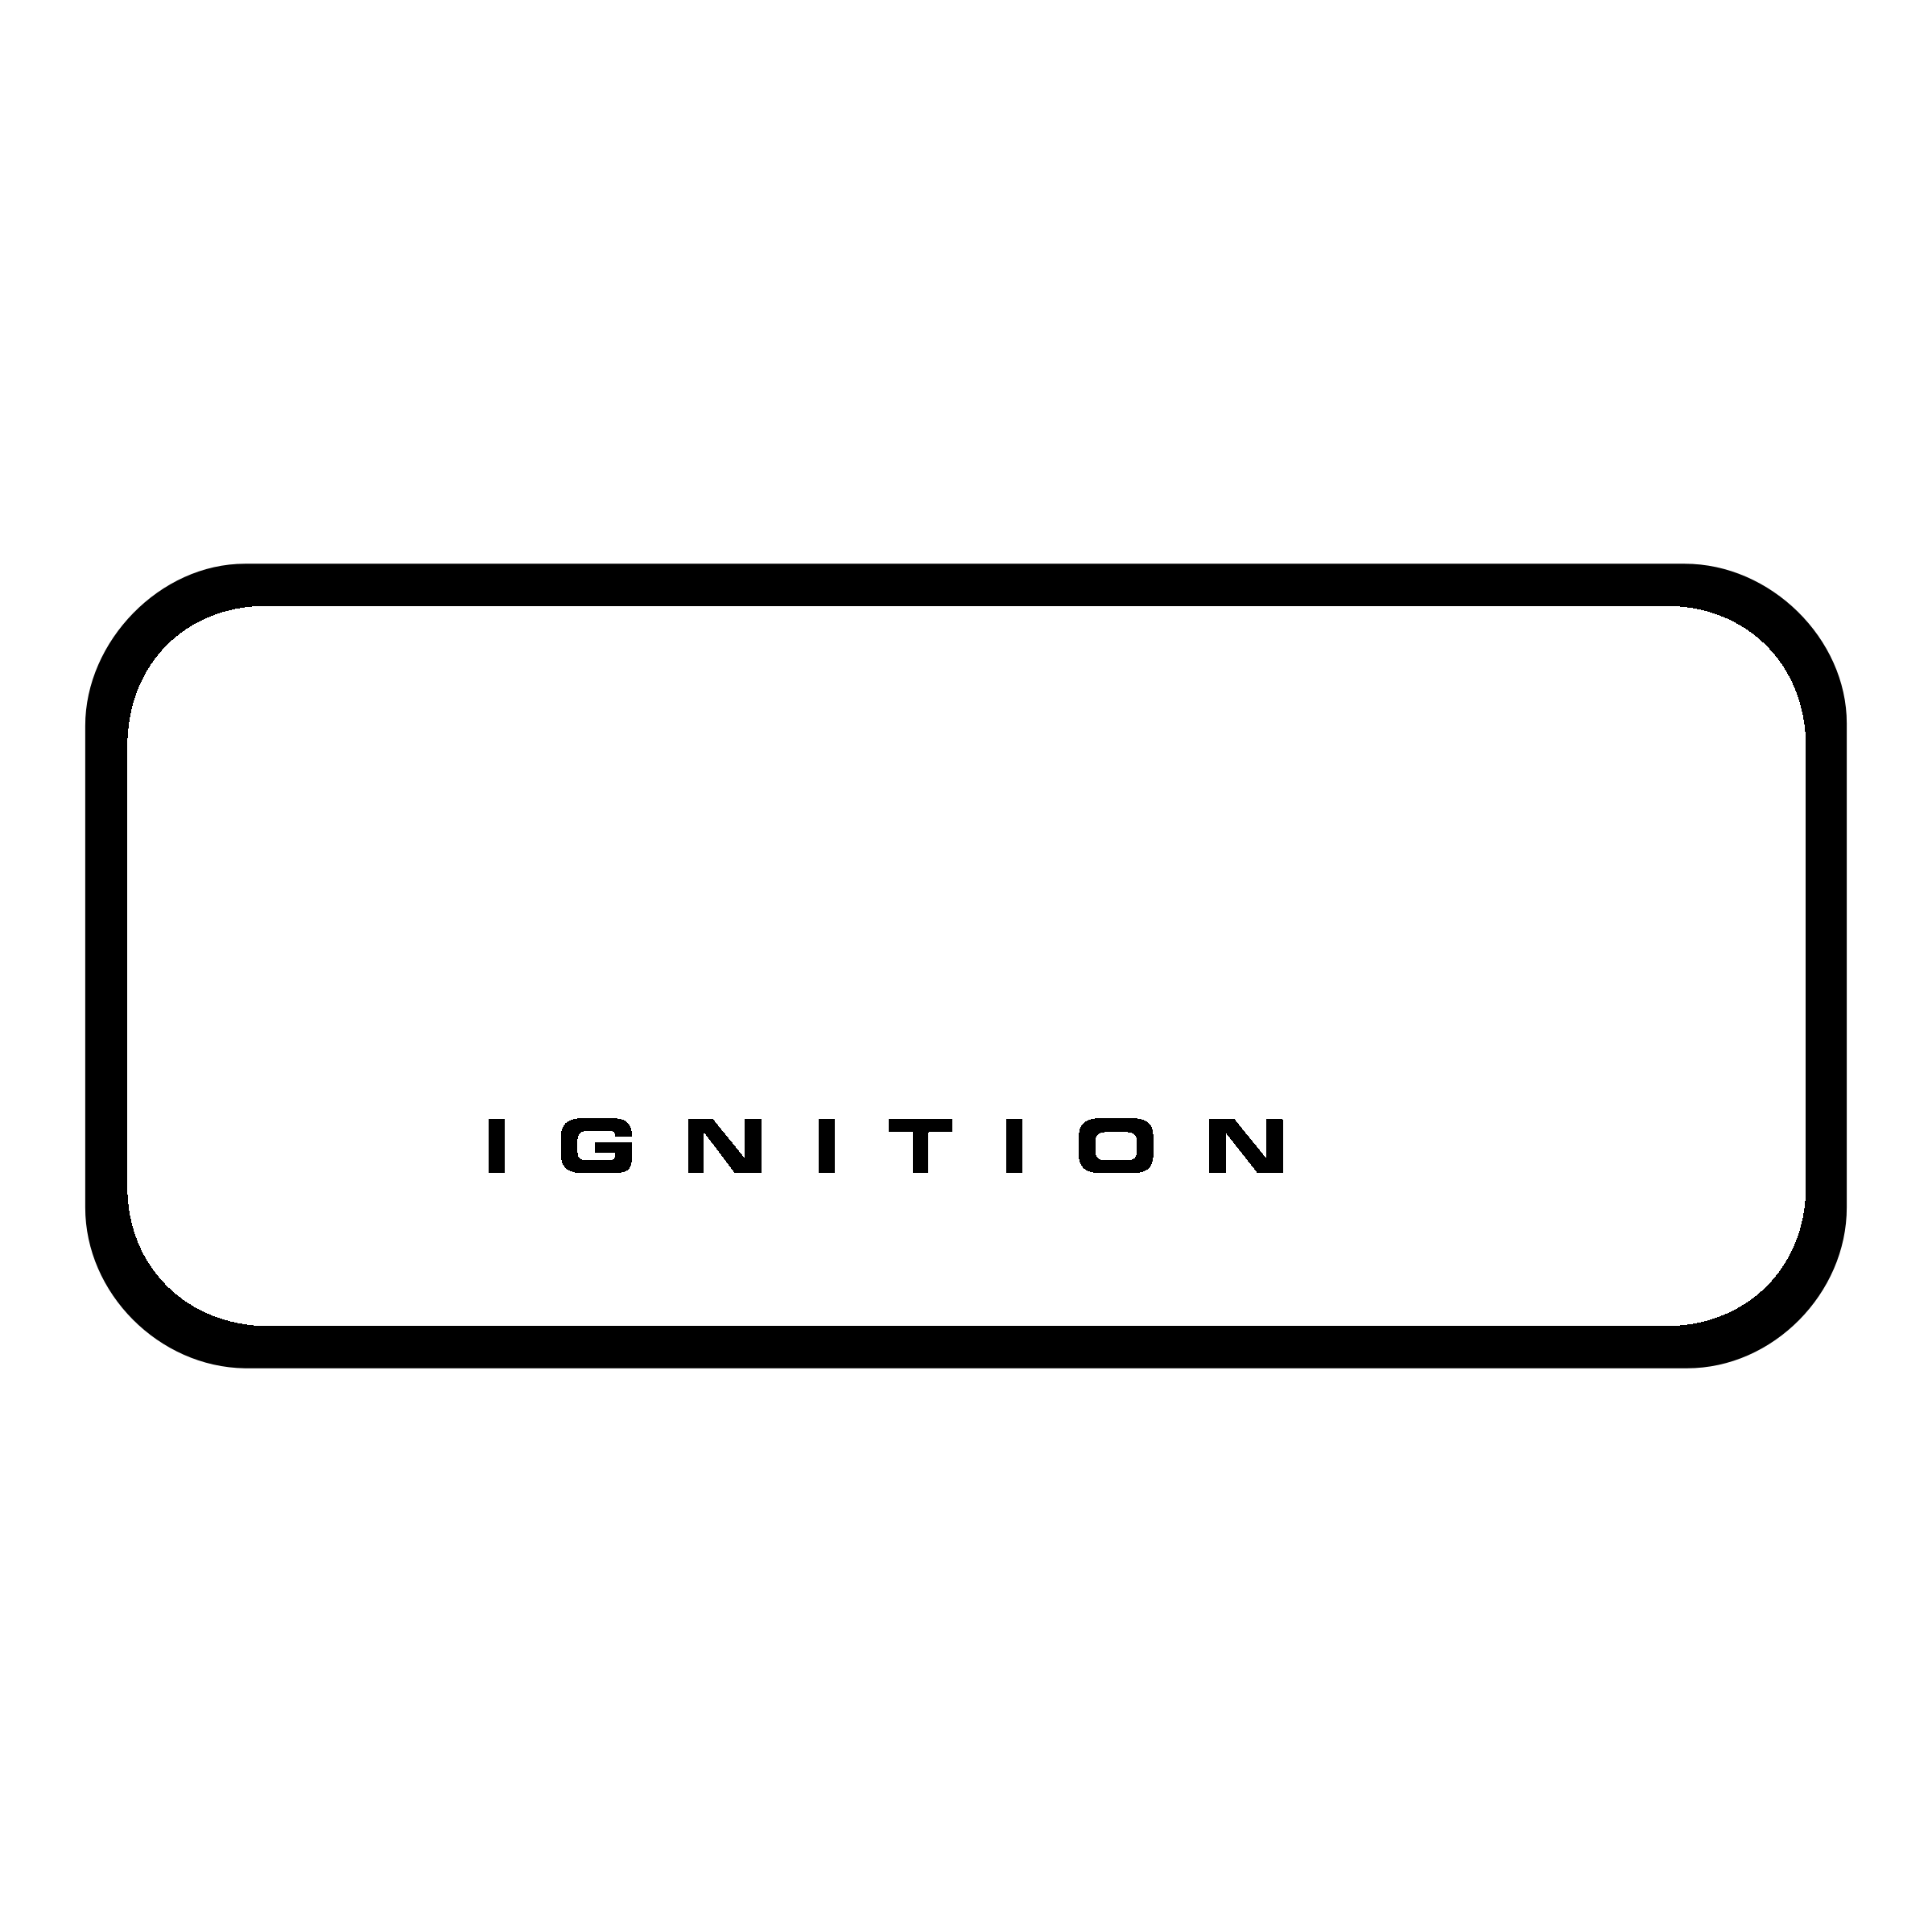 Mallory Ignition Logo Transparent Svg Vector Freebie Supply Black And White